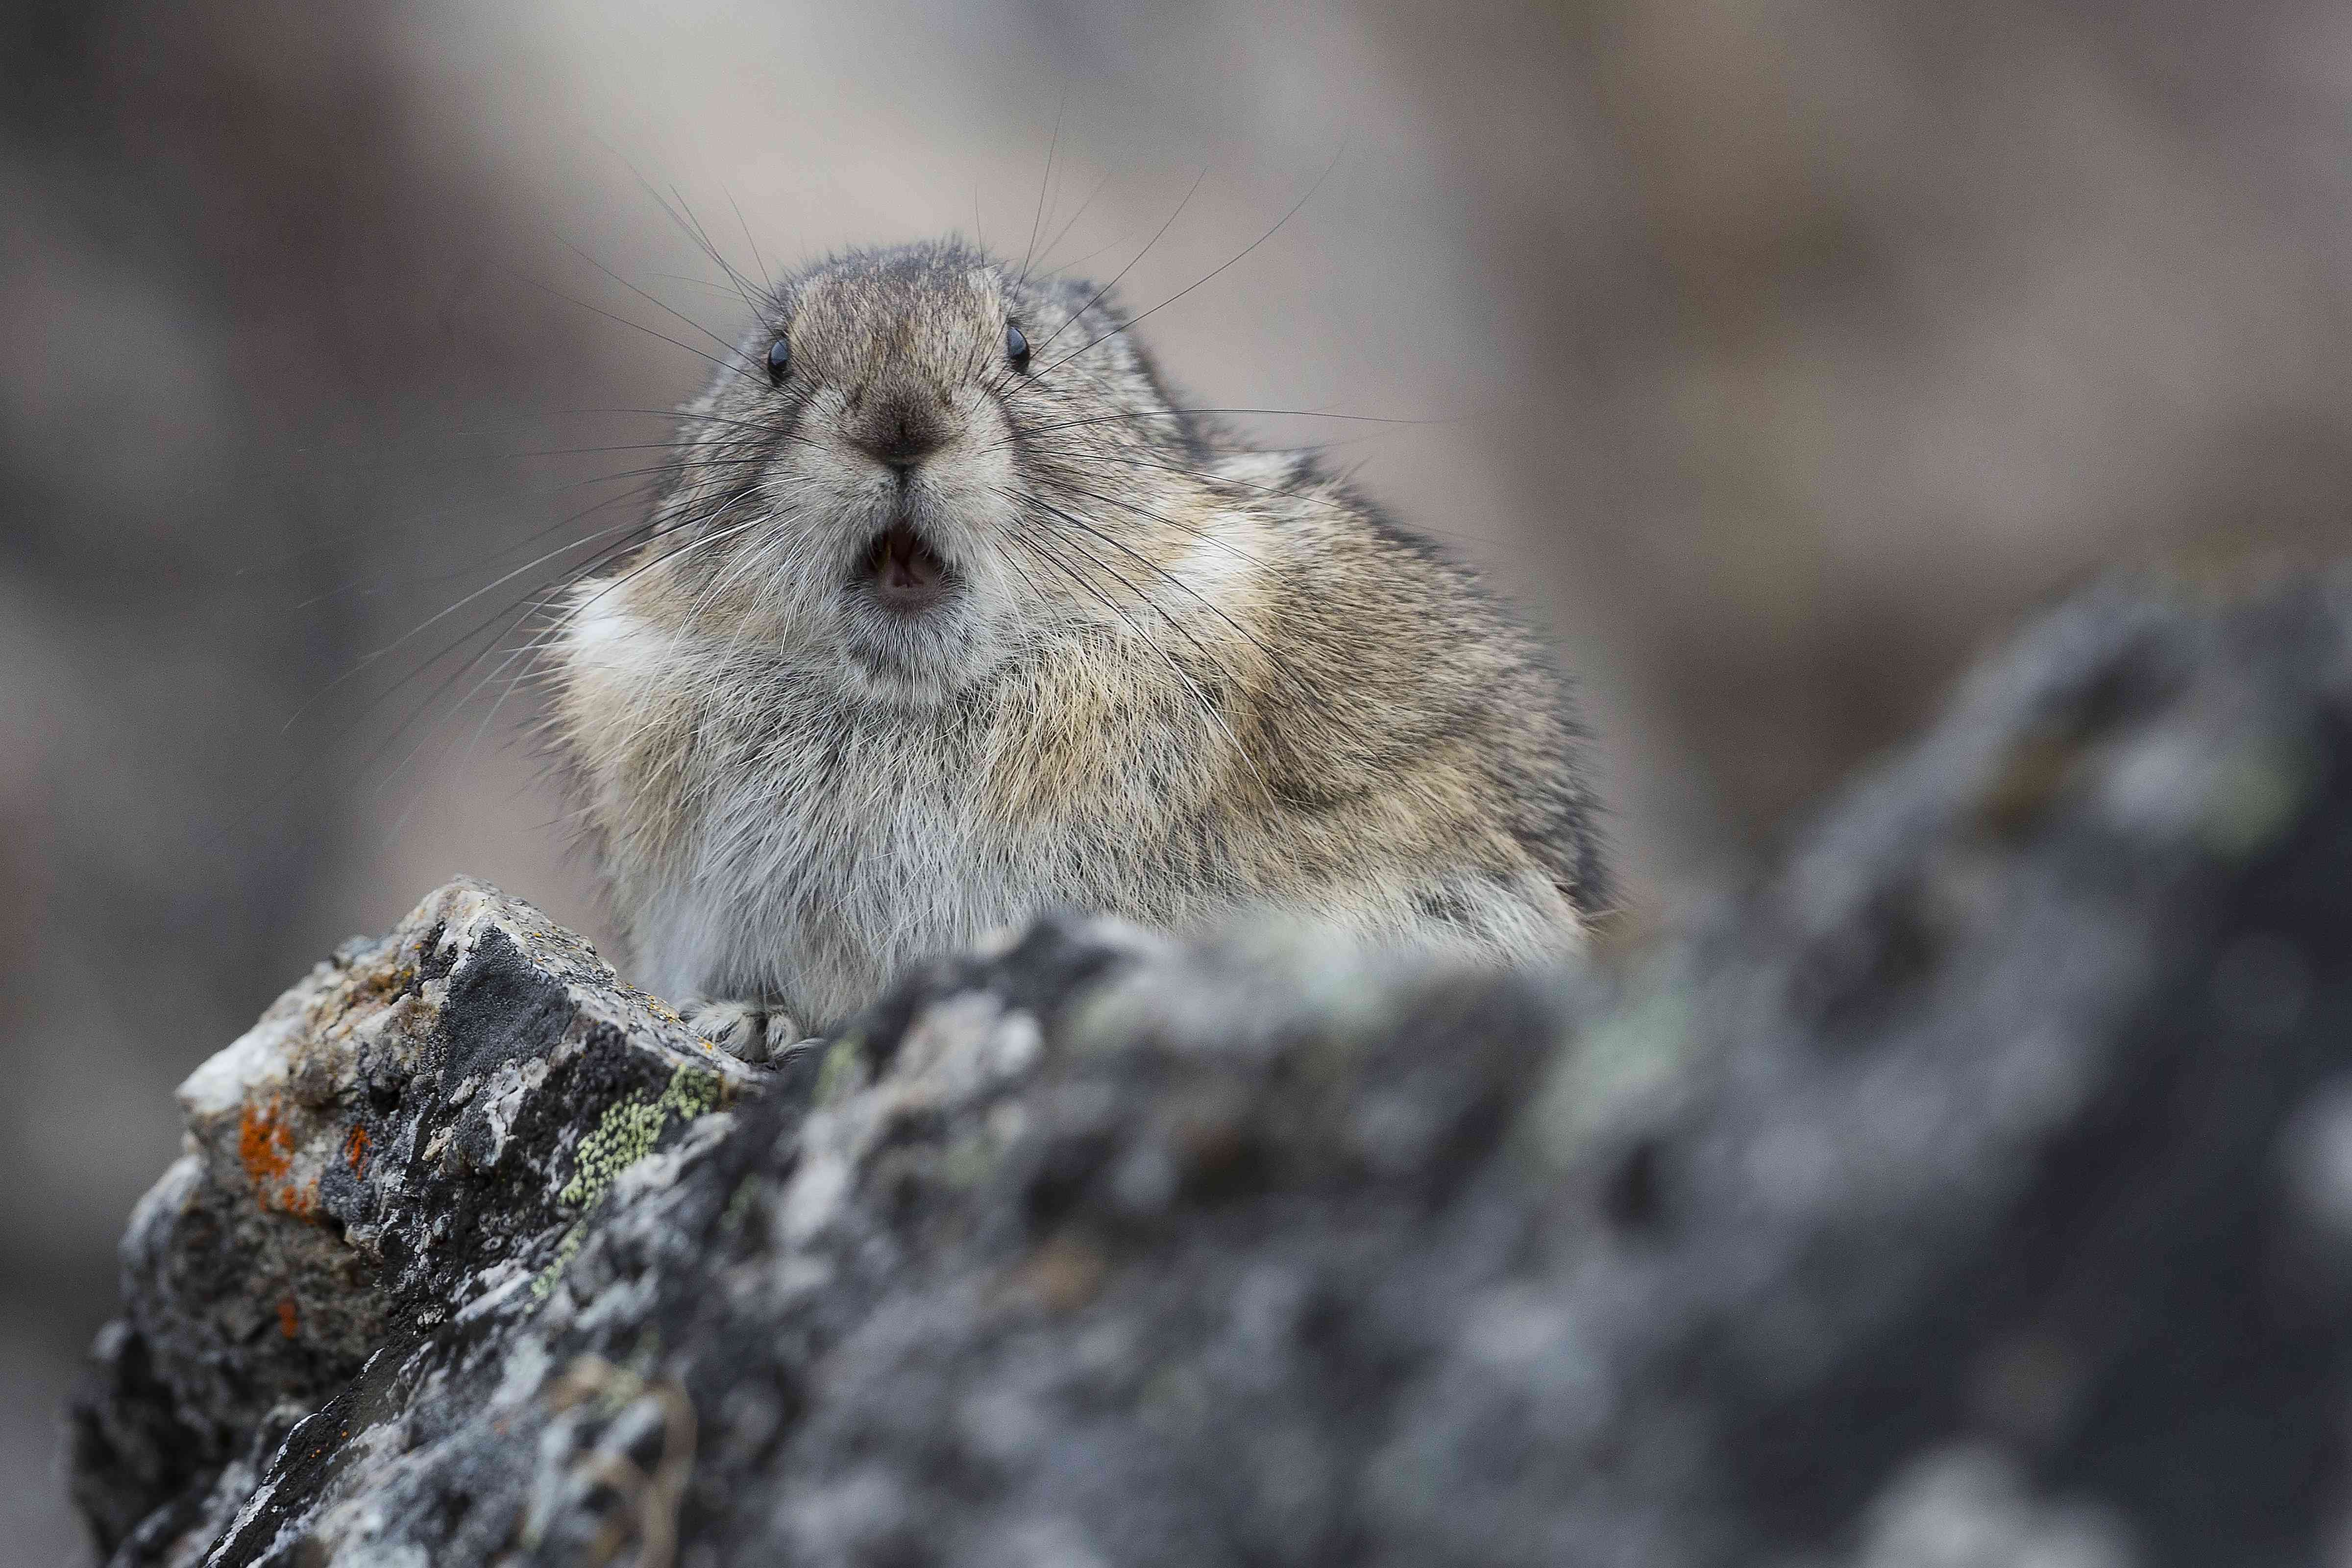 Collared pika on a rock, with its mouth open